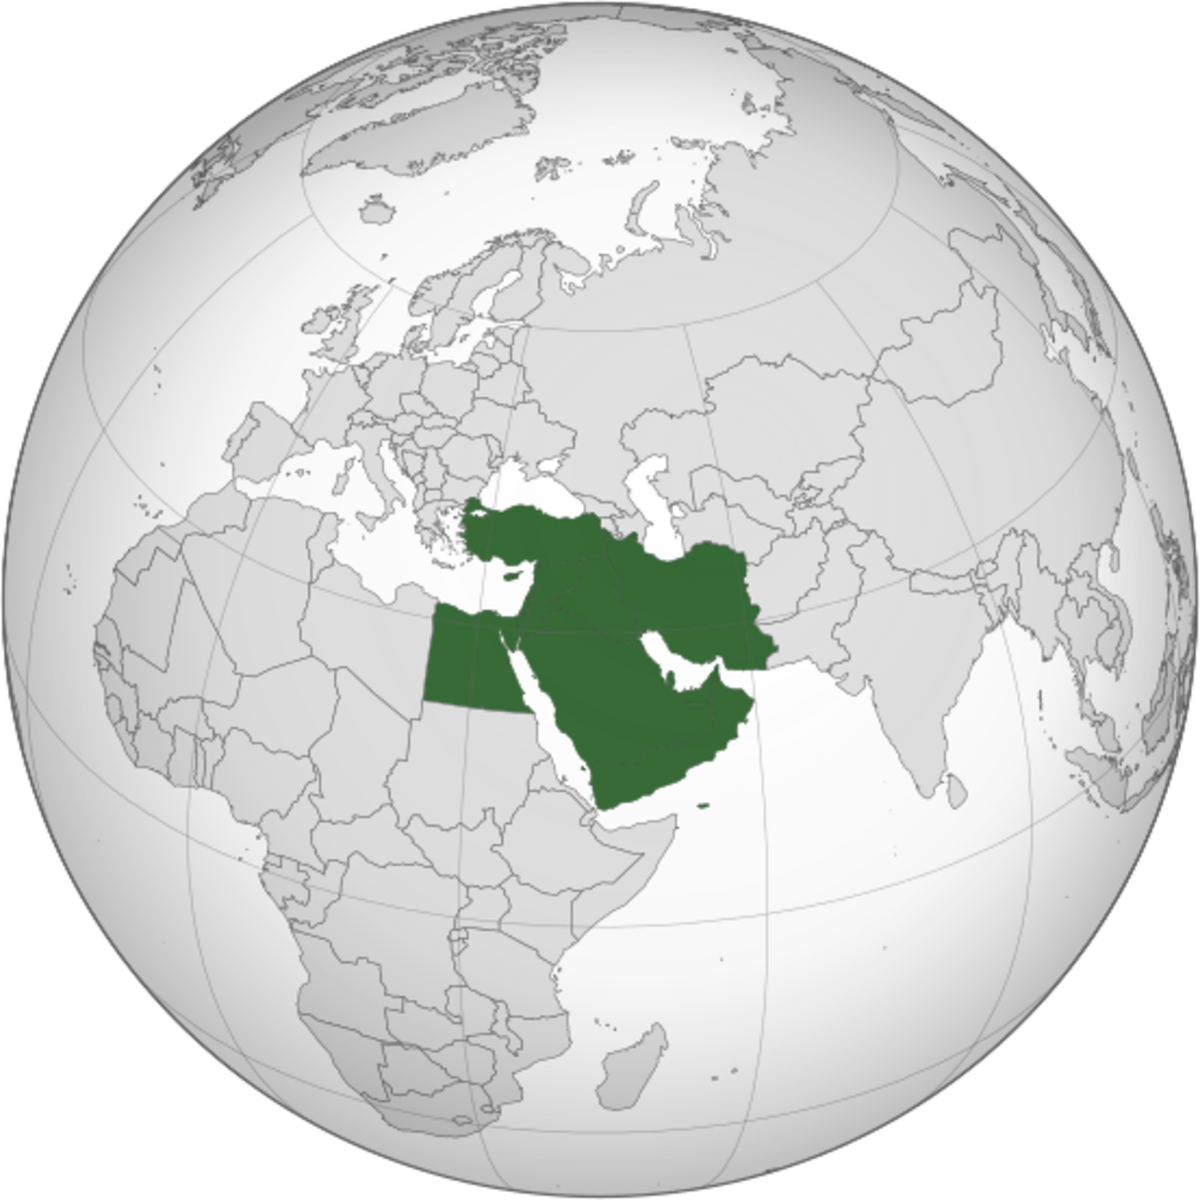 It may be one color on the map, but the Middle East is certainly not a homogeneous place.